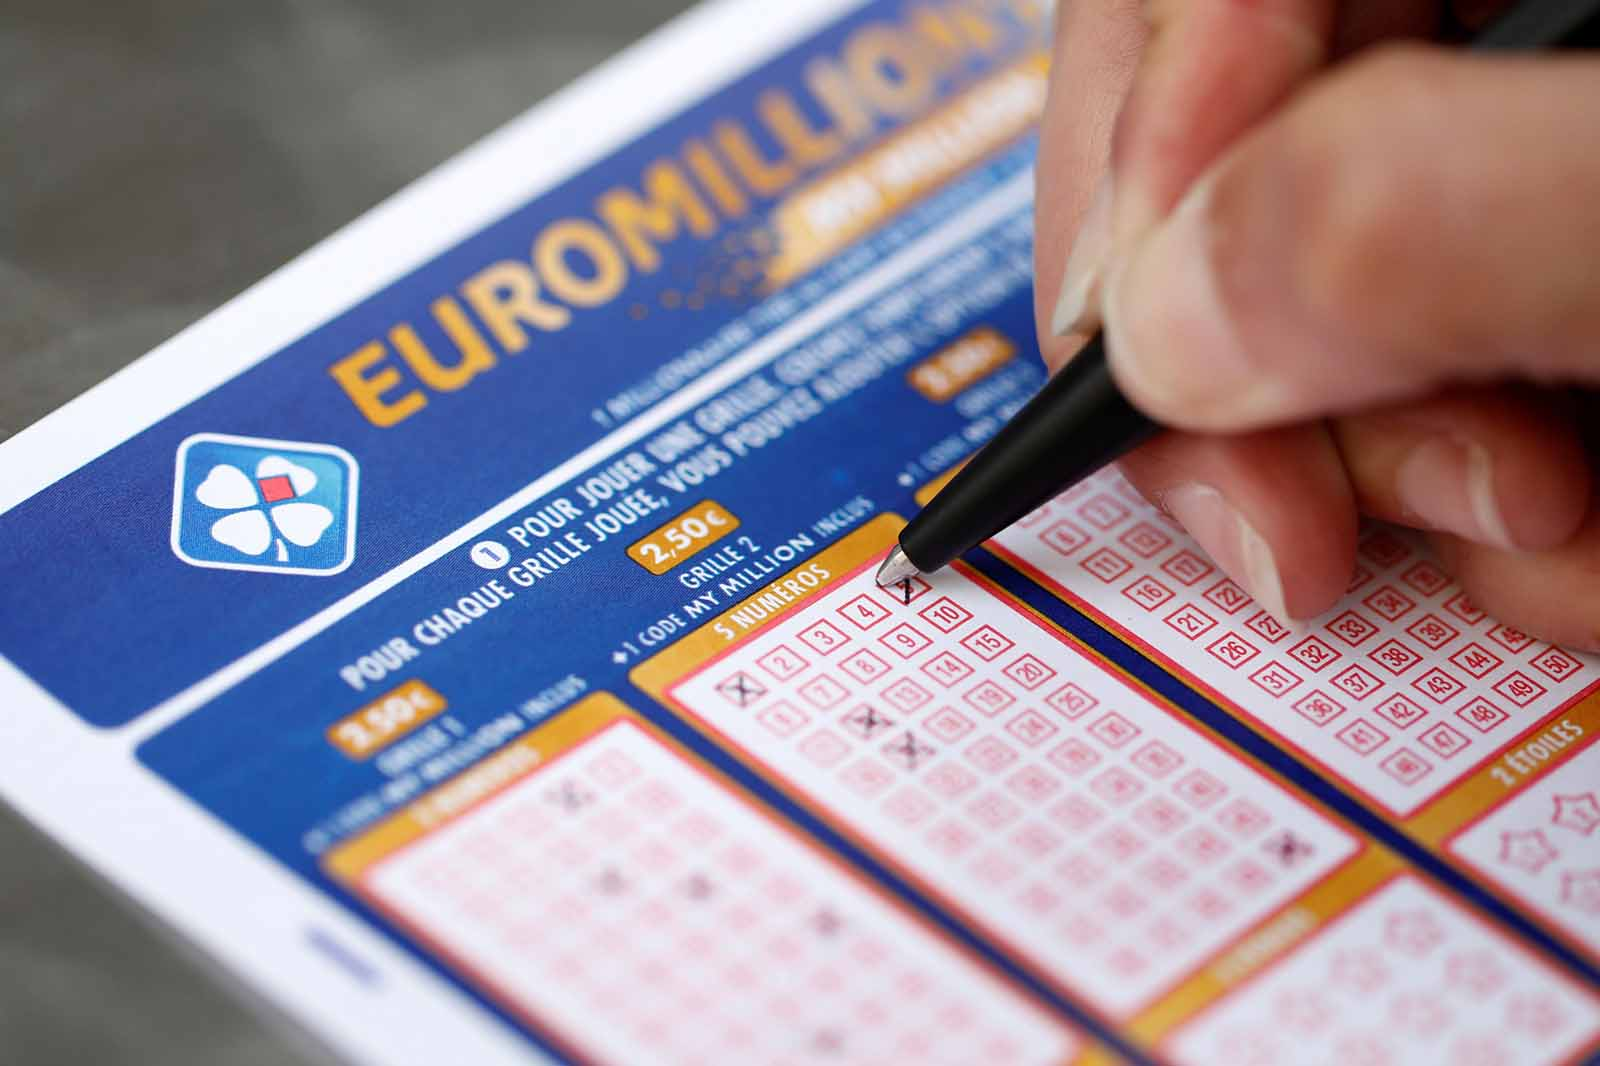 Now, more than ever, international lottery games can be played at the tip of your fingertips and for just a few rupees. See how you can be a billionaire.